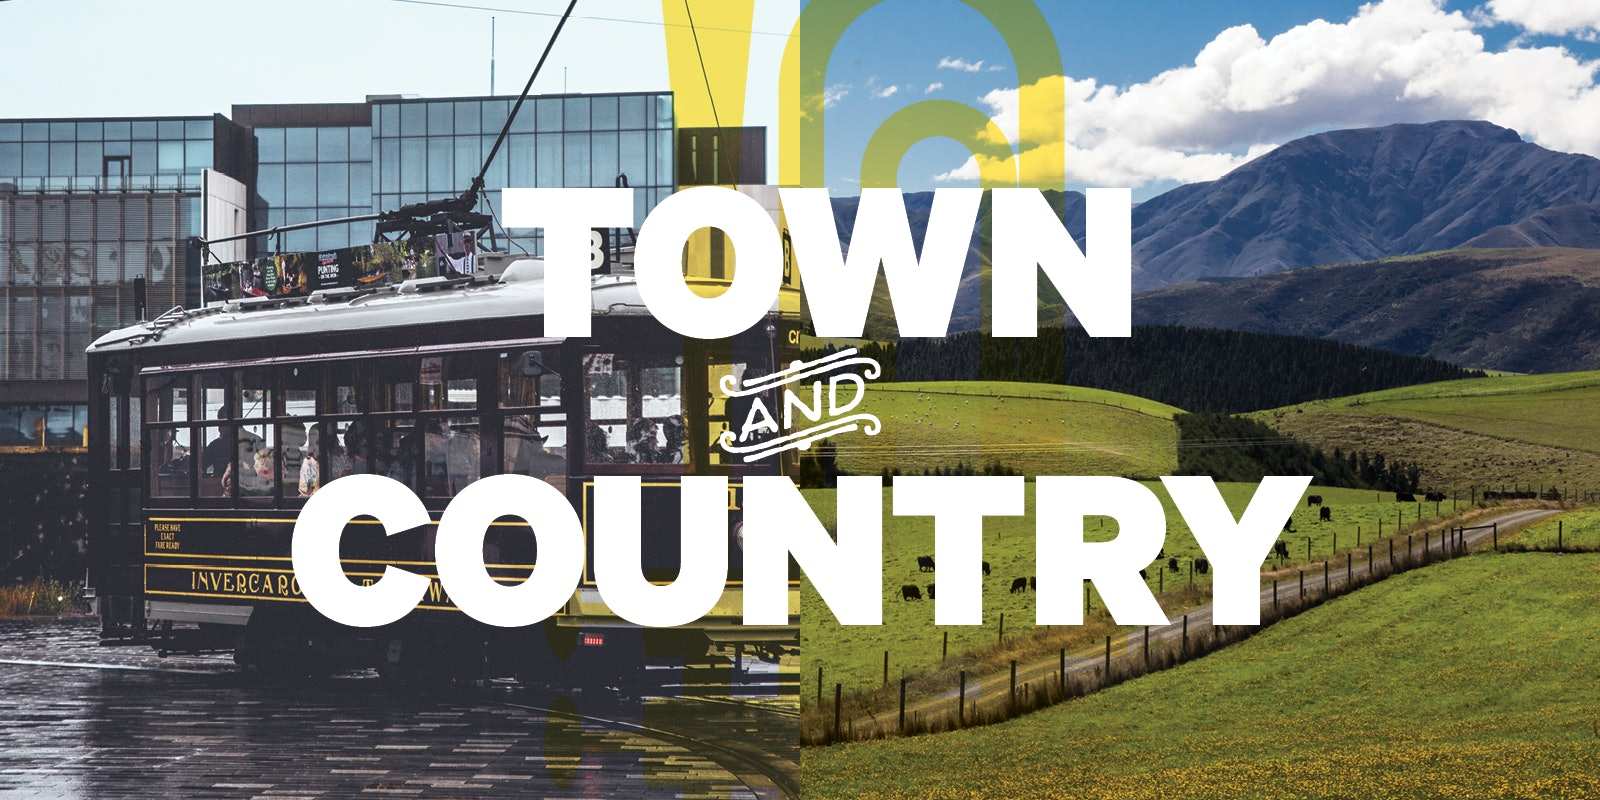 Setting Up Camp: Town and Country